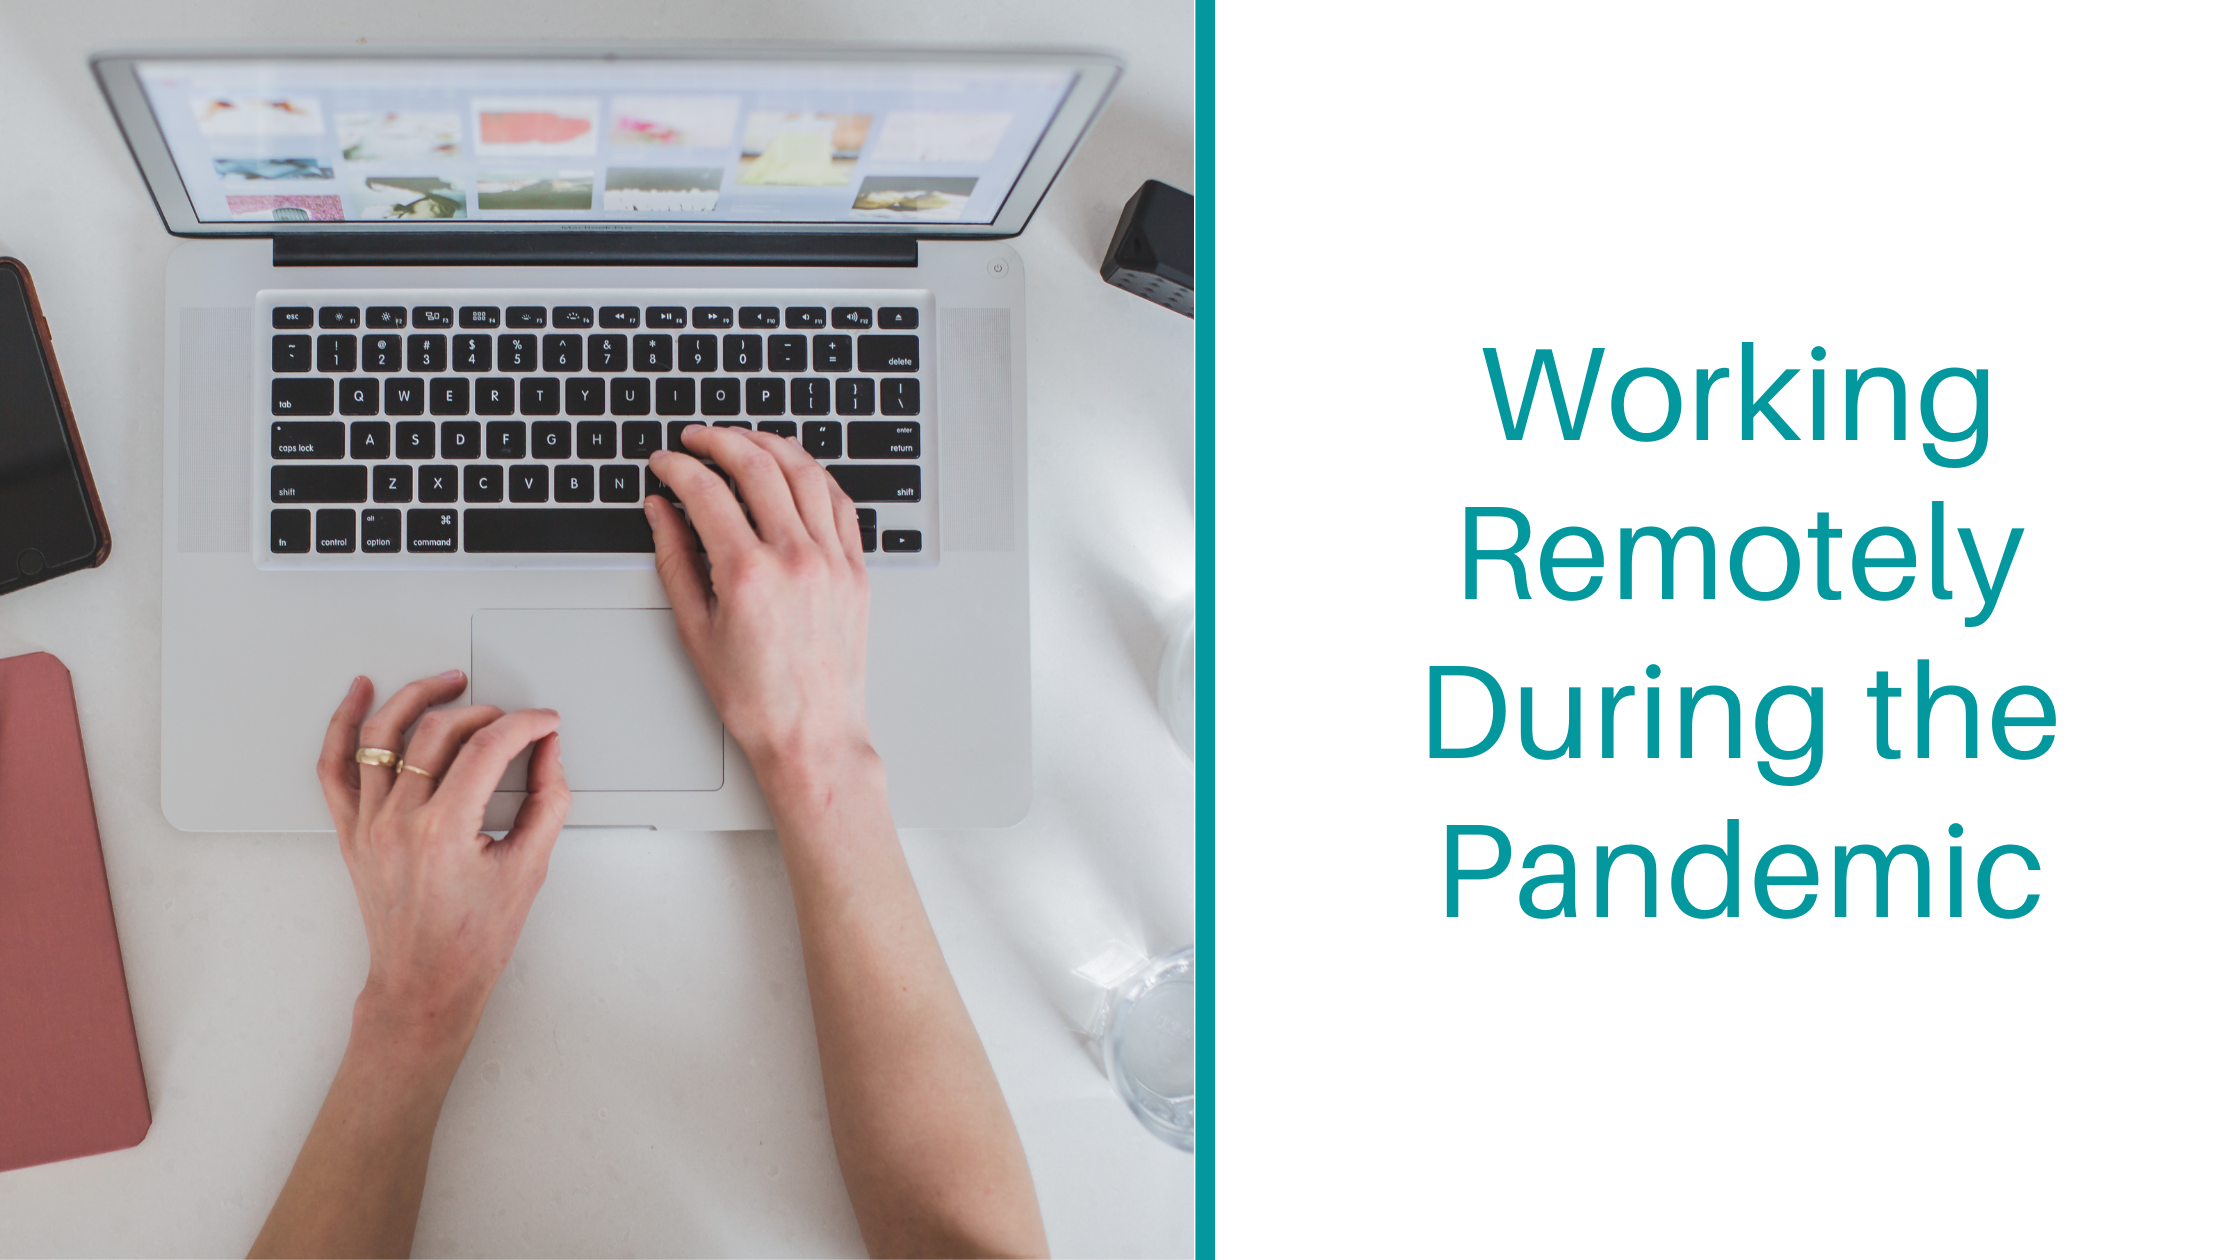 Working Remotely During the Pandemic